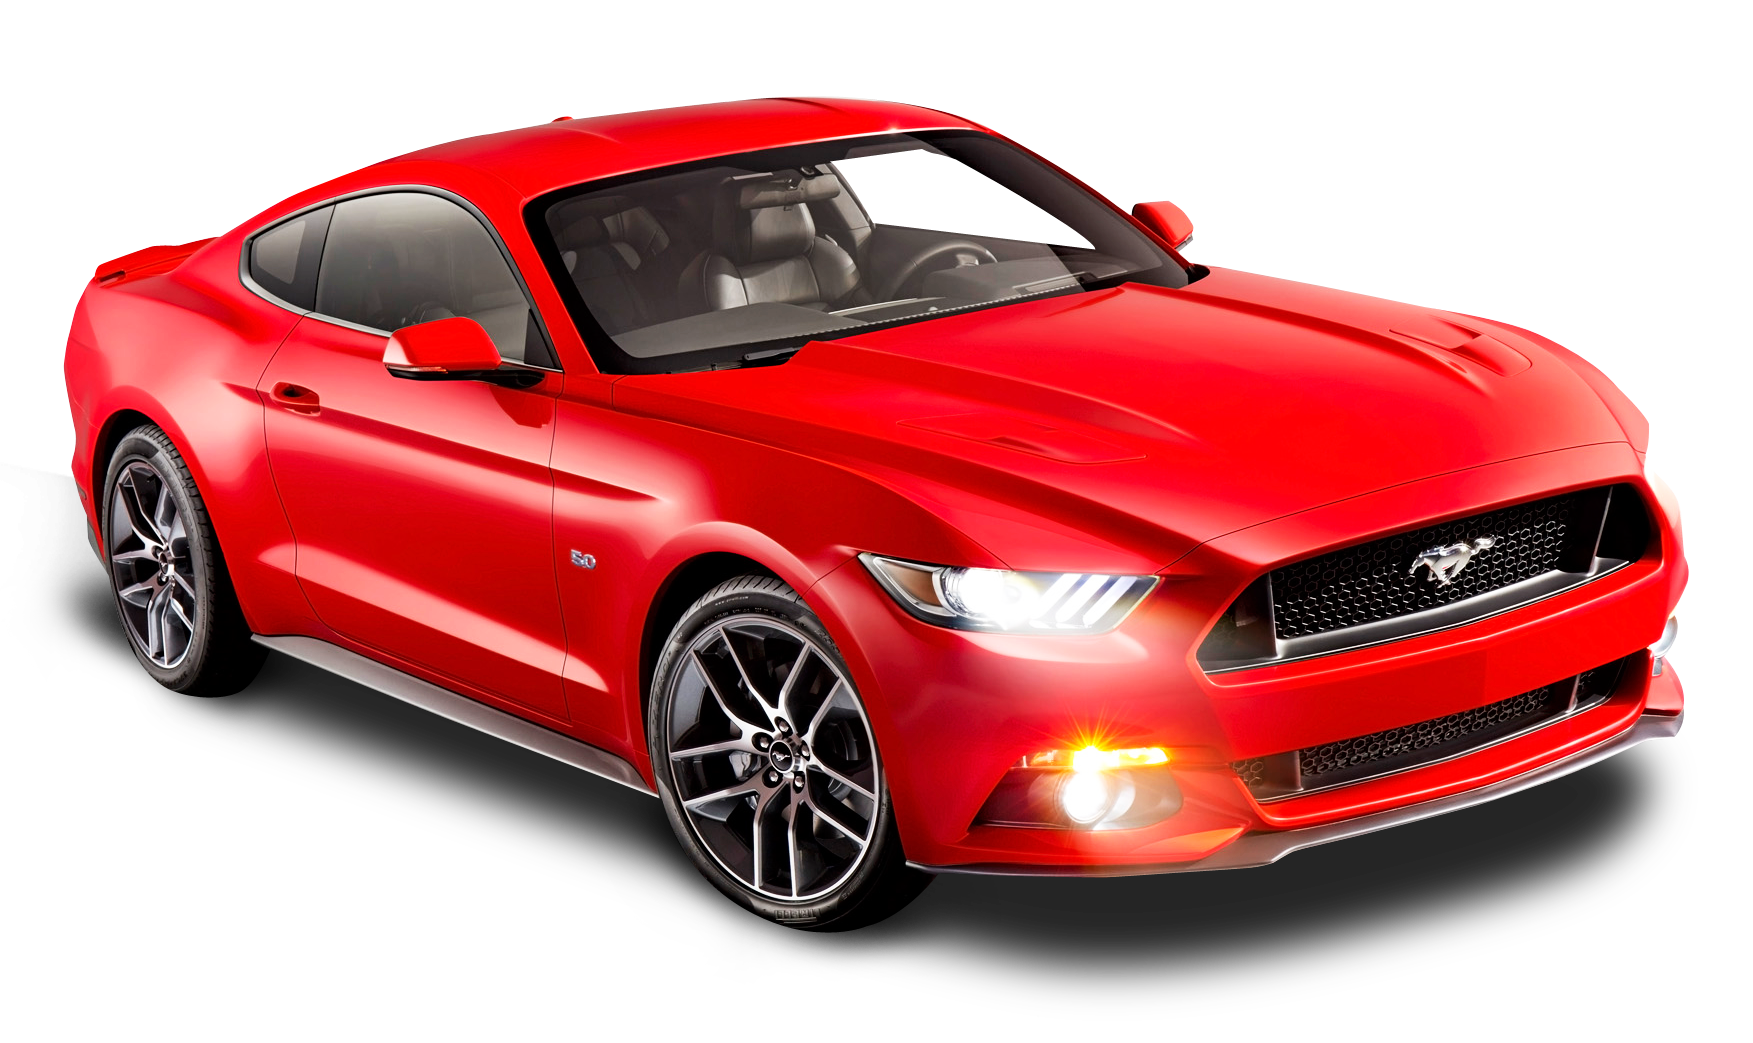 Ford Mustang Sports Cars Mustang Ford Mustang Price 2015 Ford Mustang